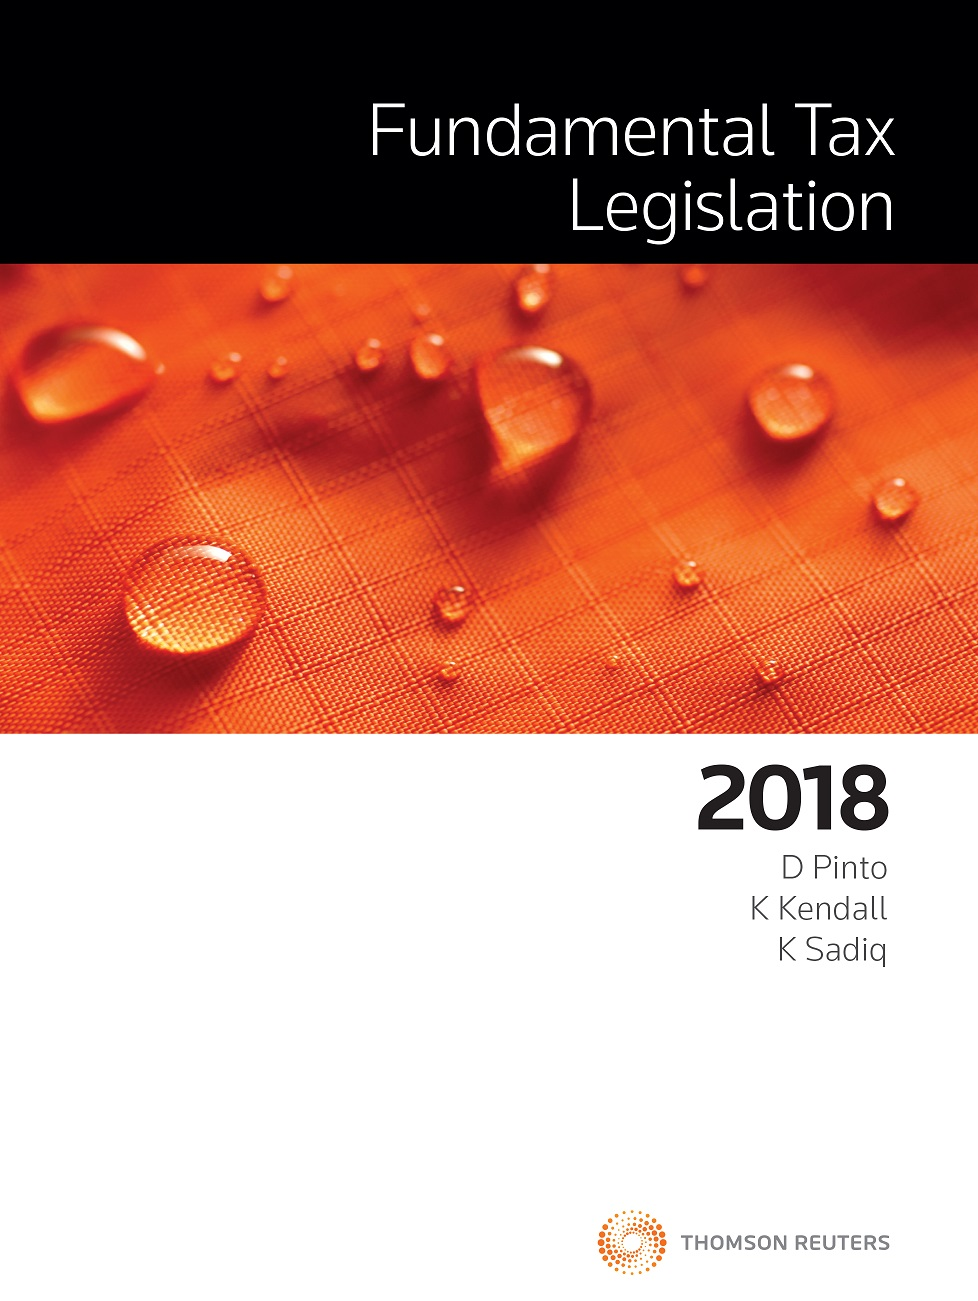 Fundamental Tax Legislation 2018